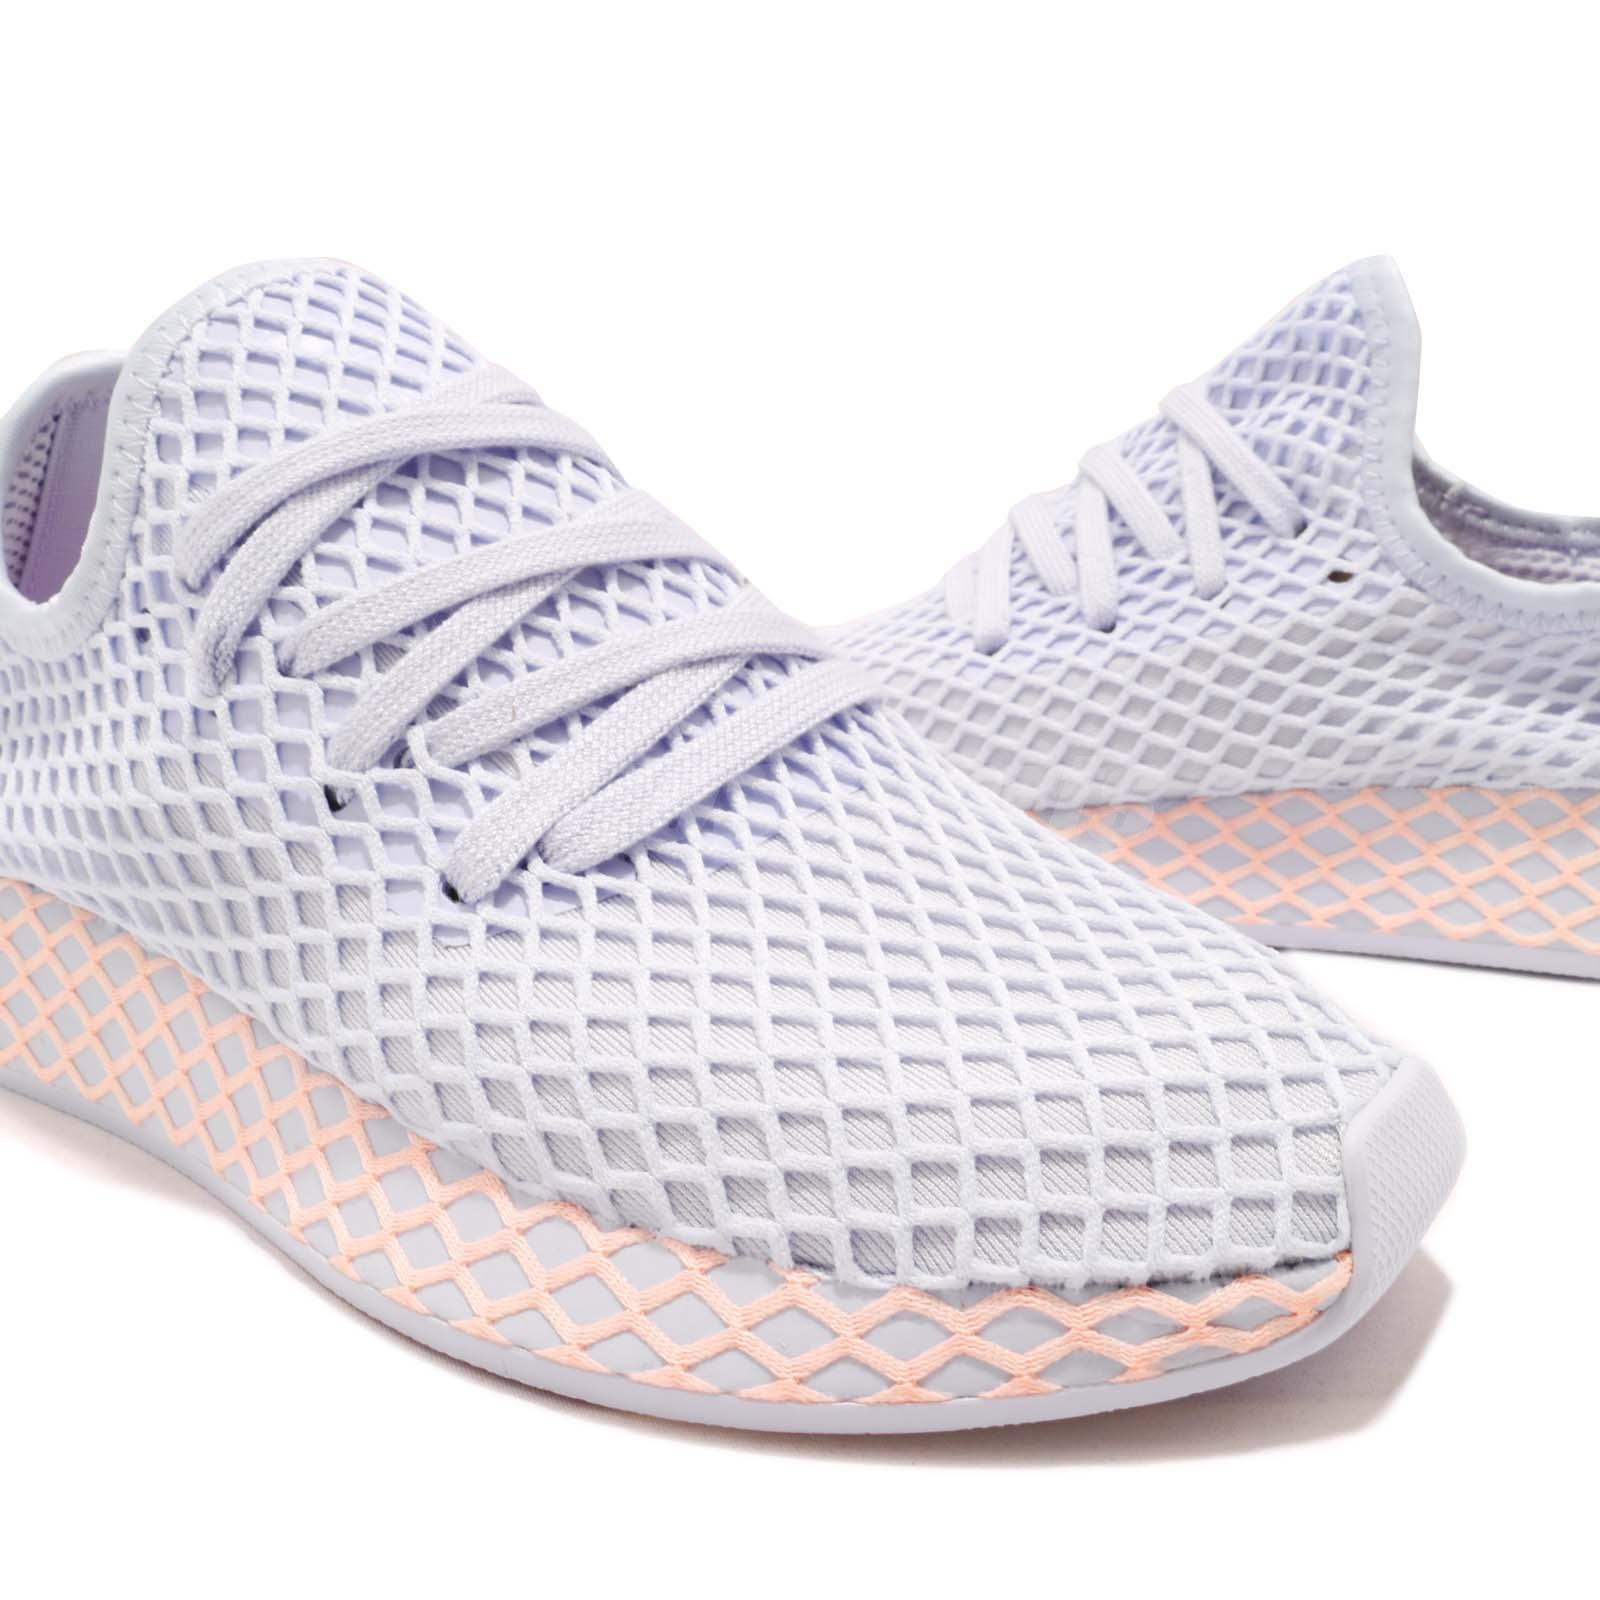 detailed pictures fe2c0 5b551 adidas Originals Deerupt W Runner Aero Blue Clear Orange Run